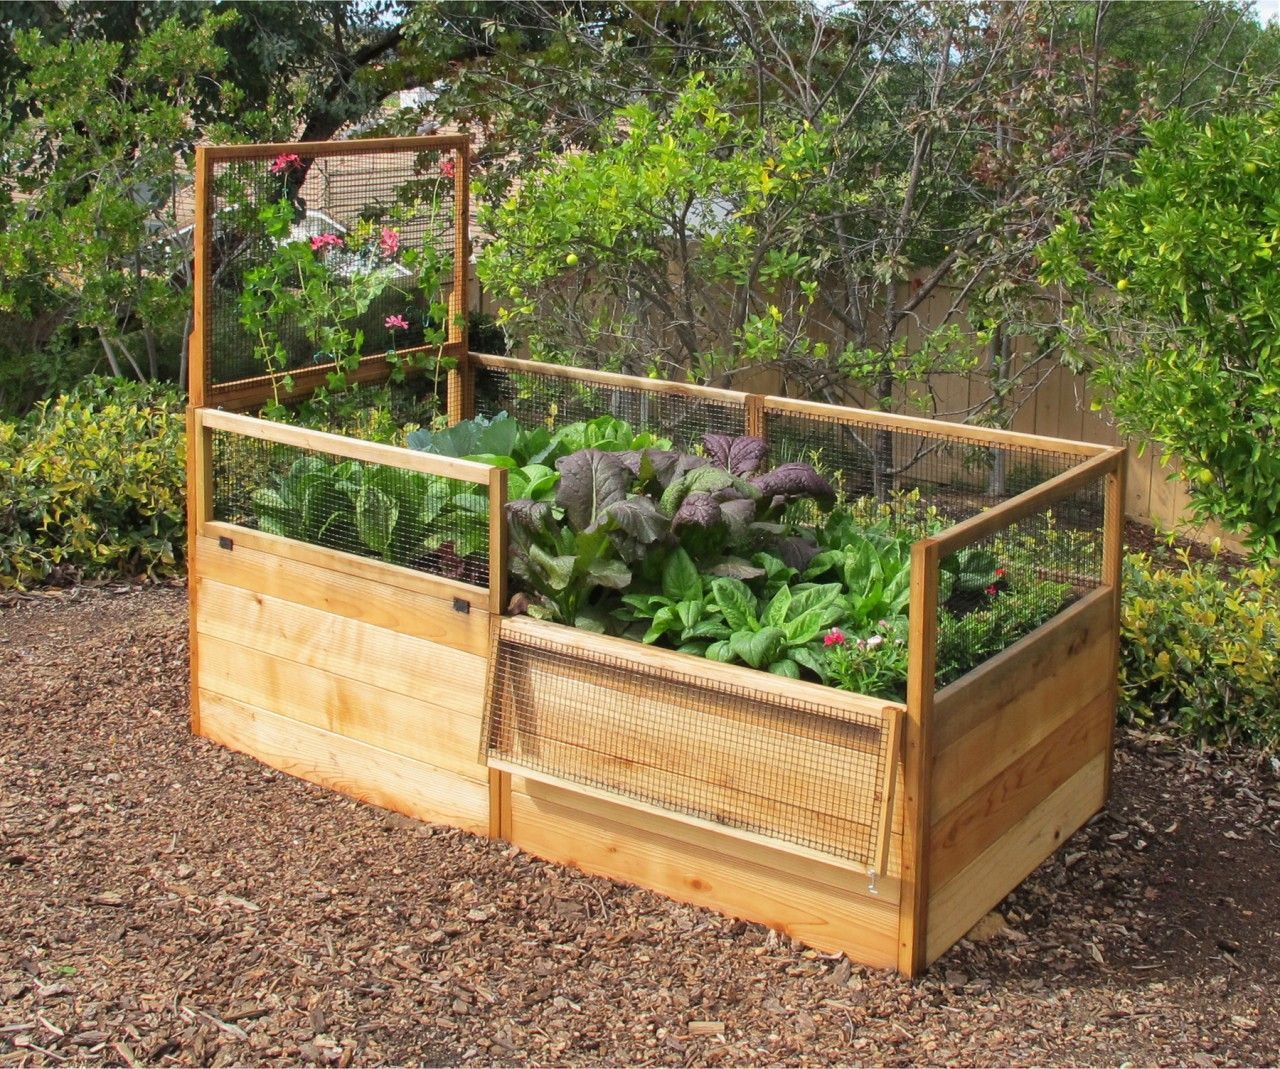 Pin By Tamika Lashelle On Grow Your Own Raised Garden